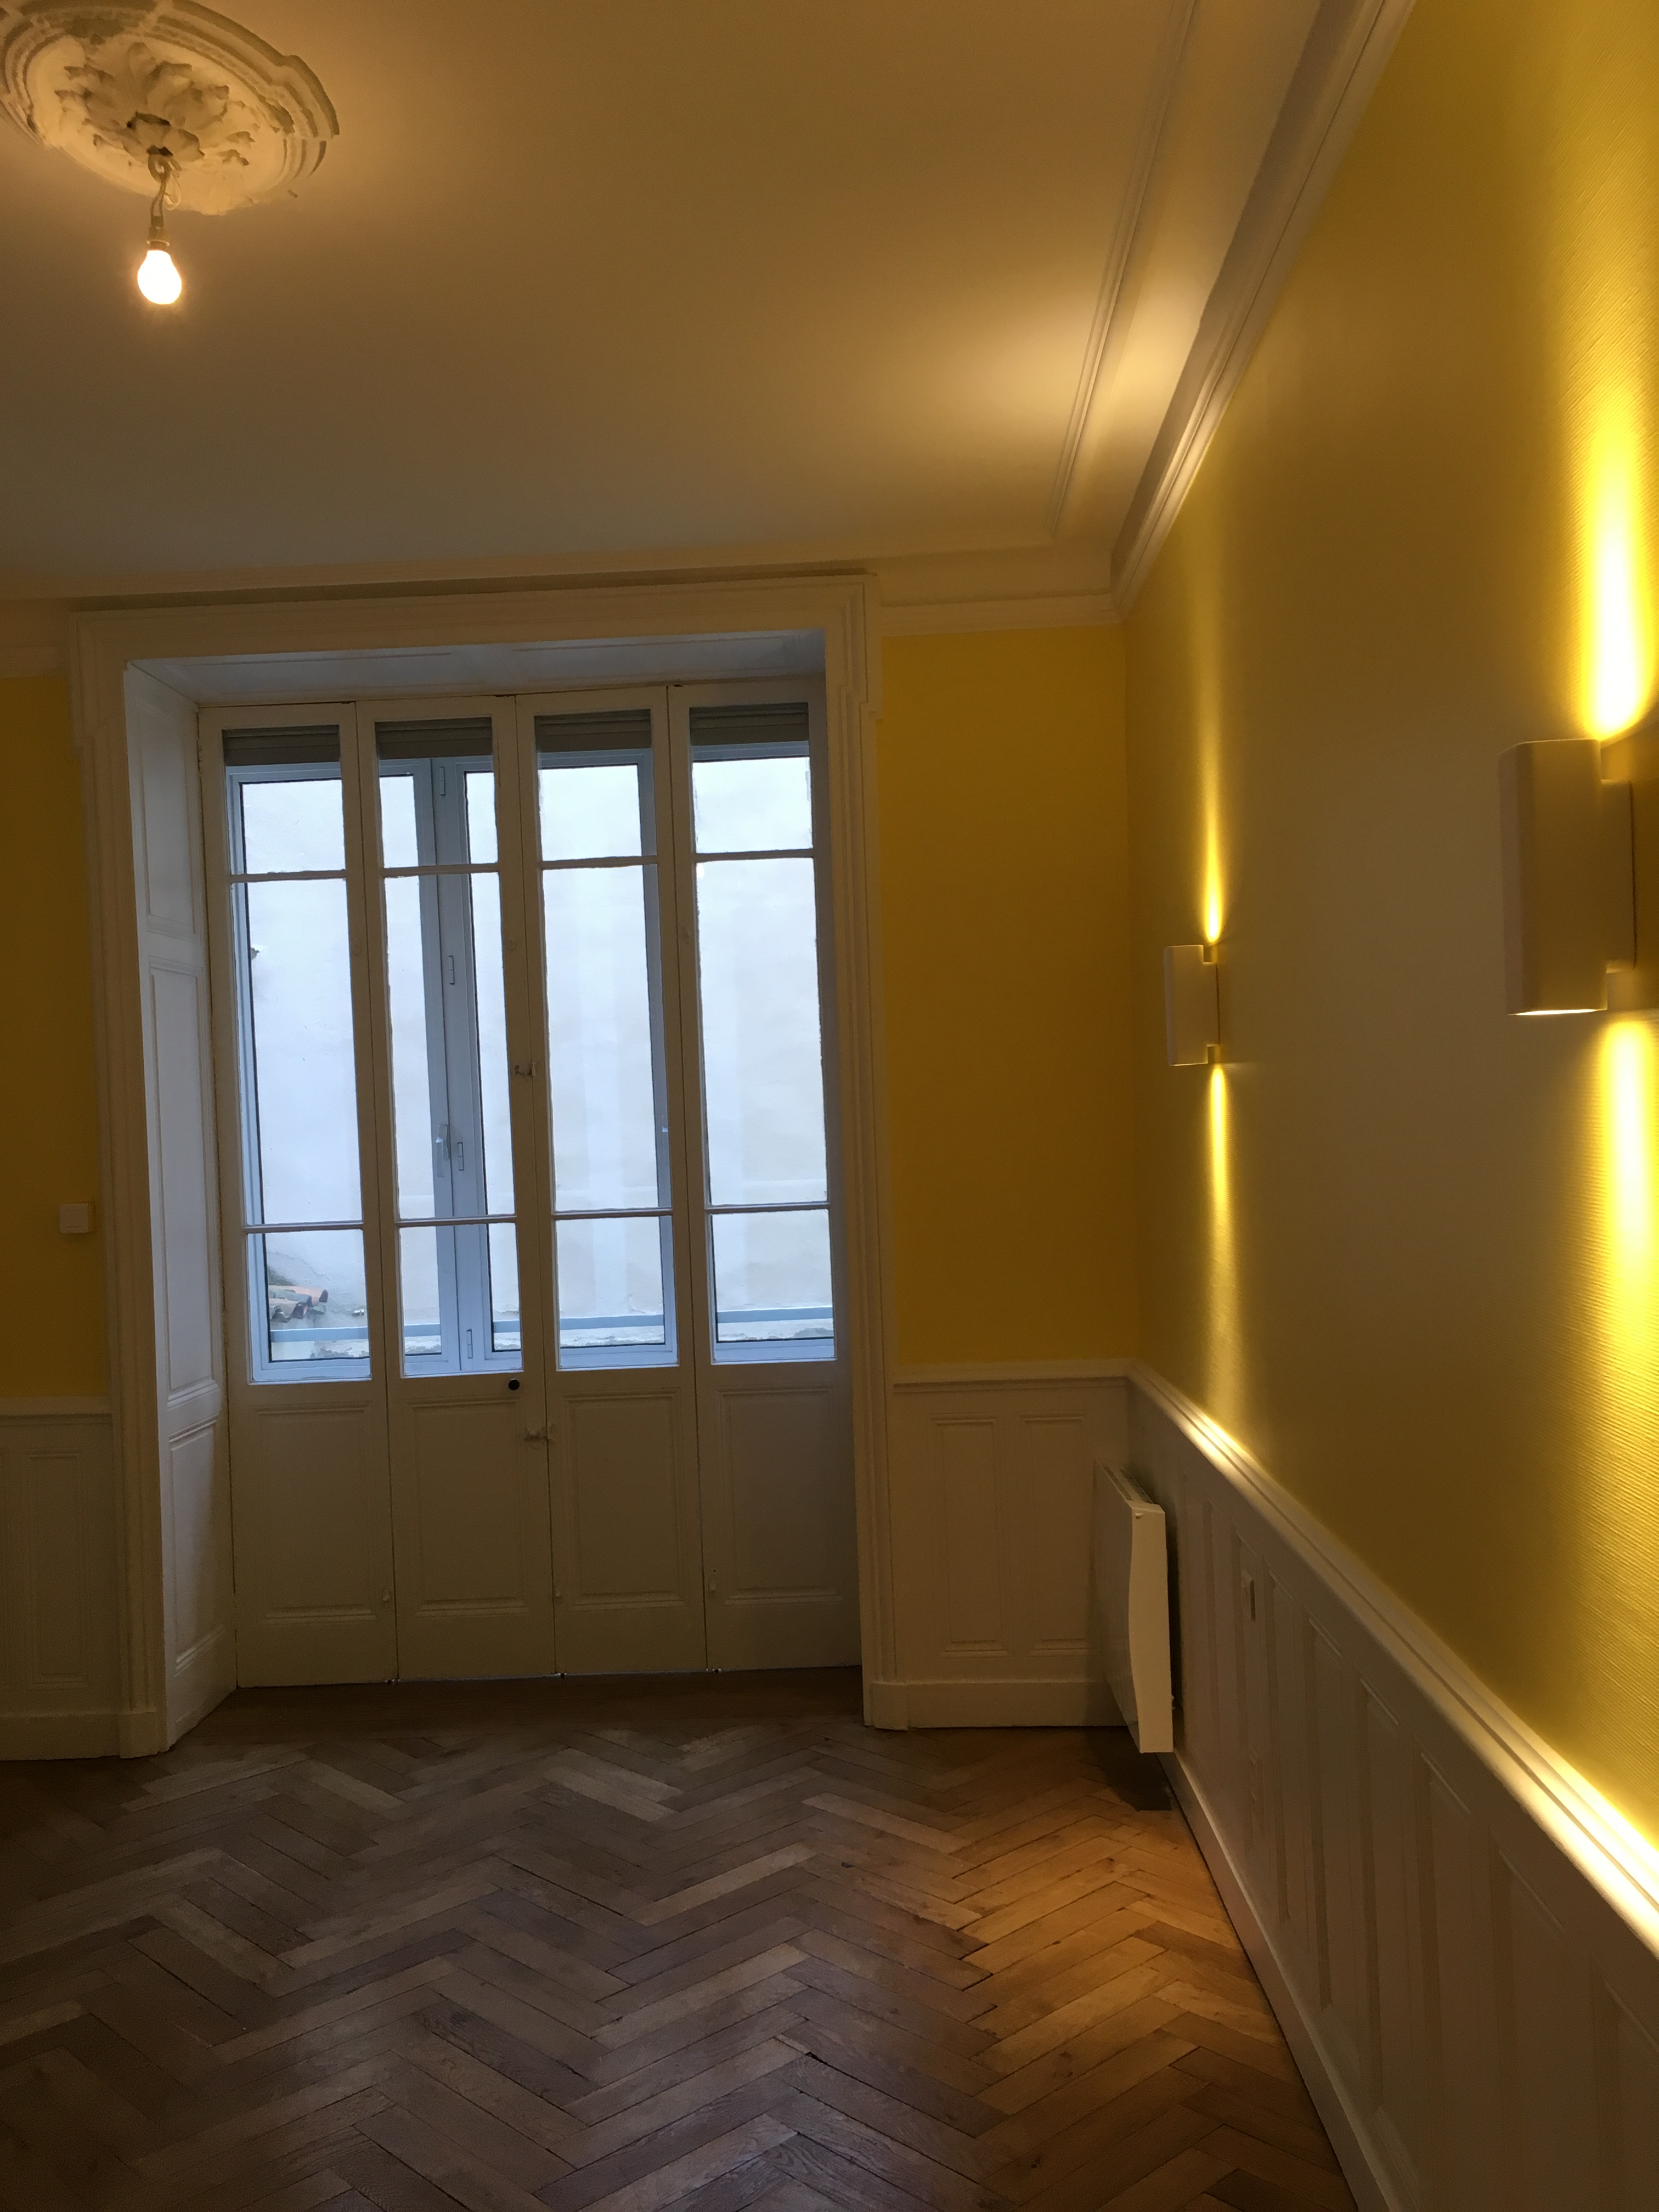 RENOVATION RUE BONNEL 69003